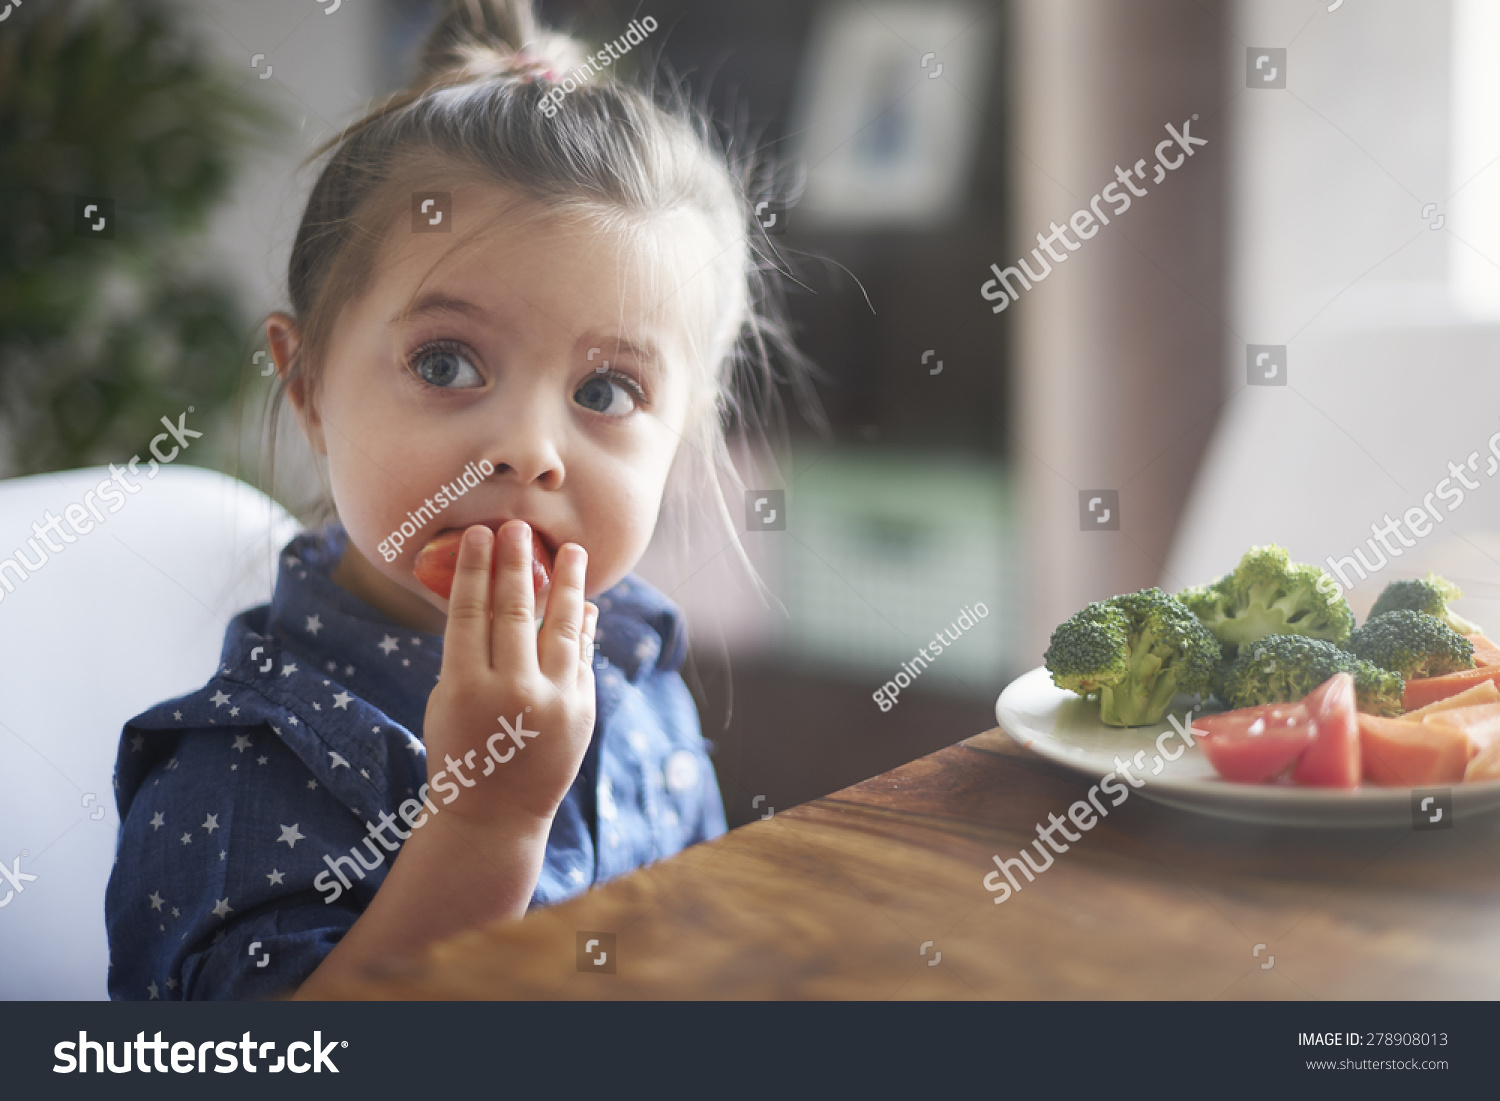 Eating vegetables by child make them healthier #278908013